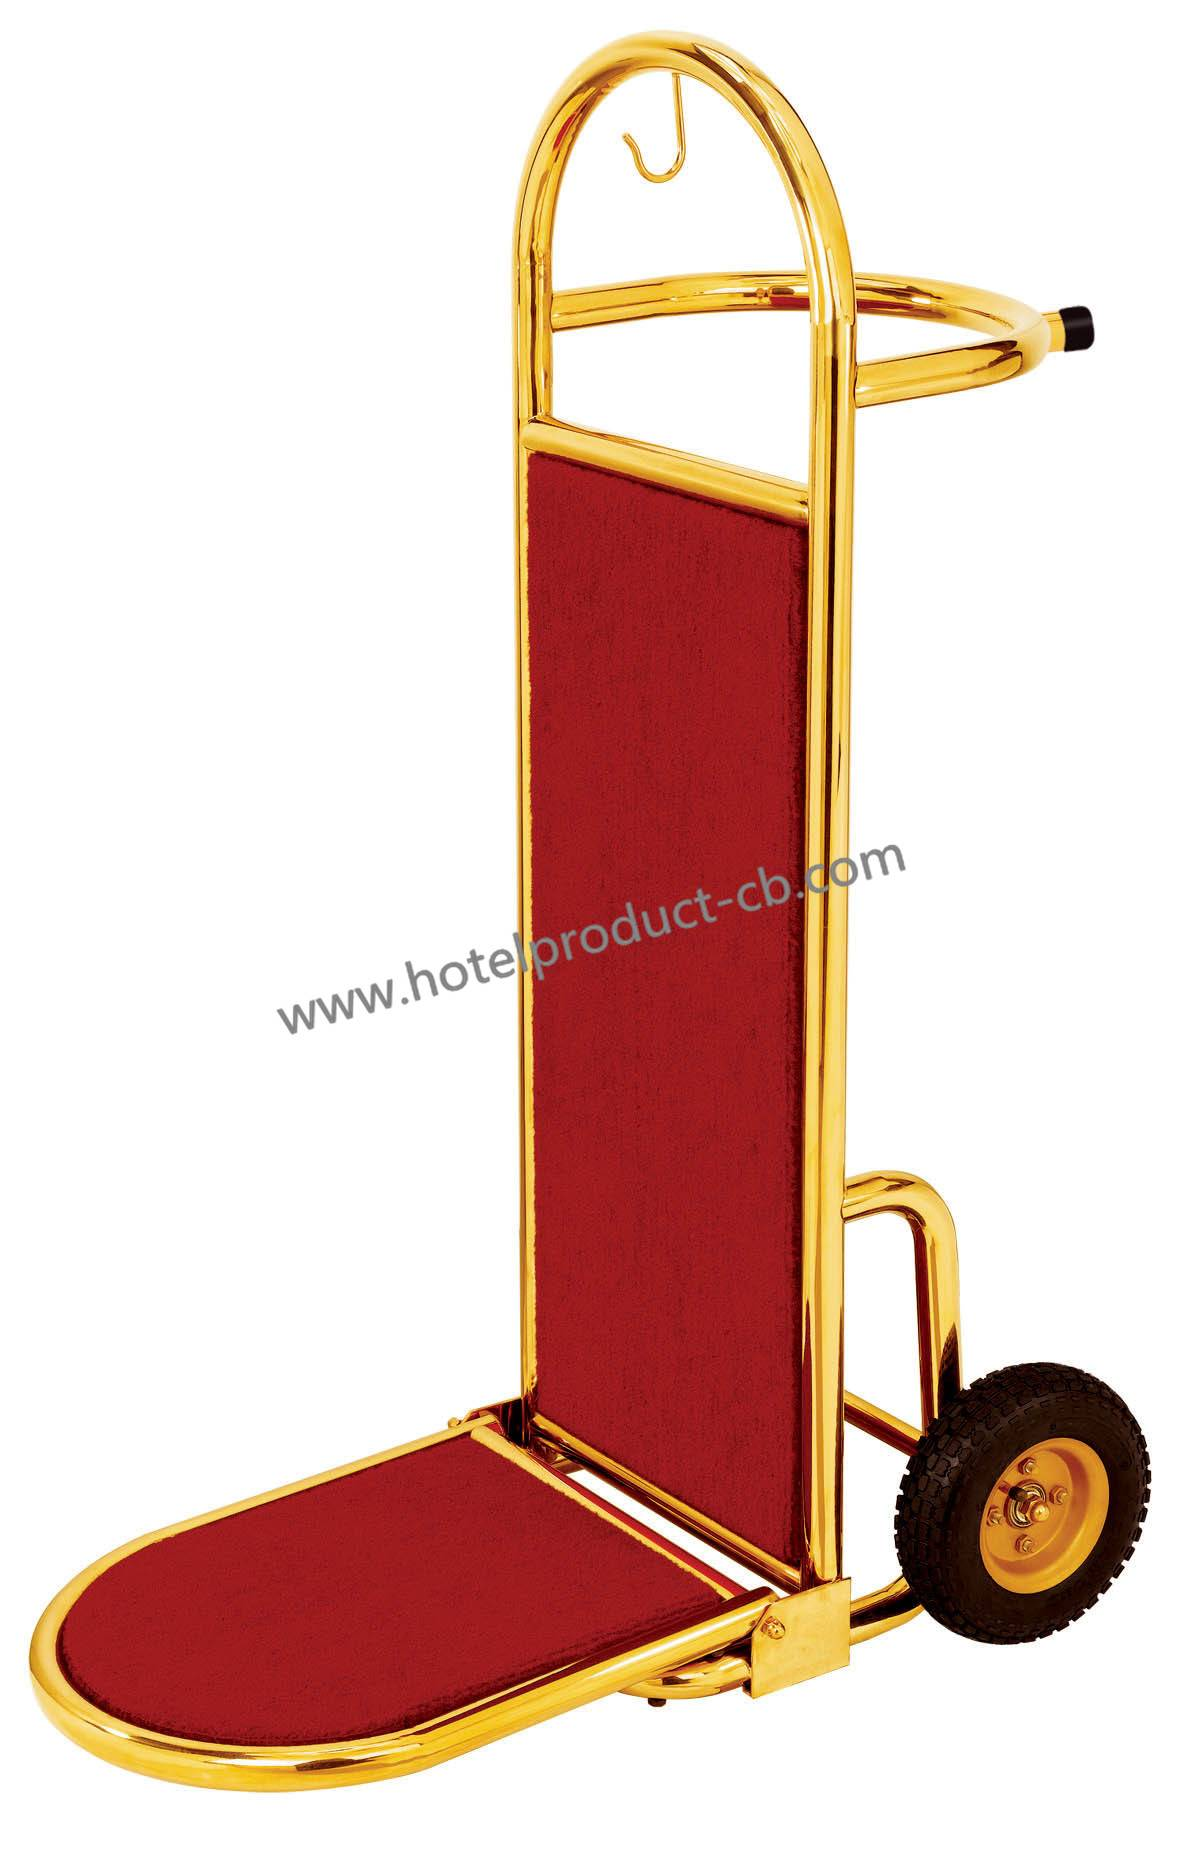 hot sell hand truck manufacture